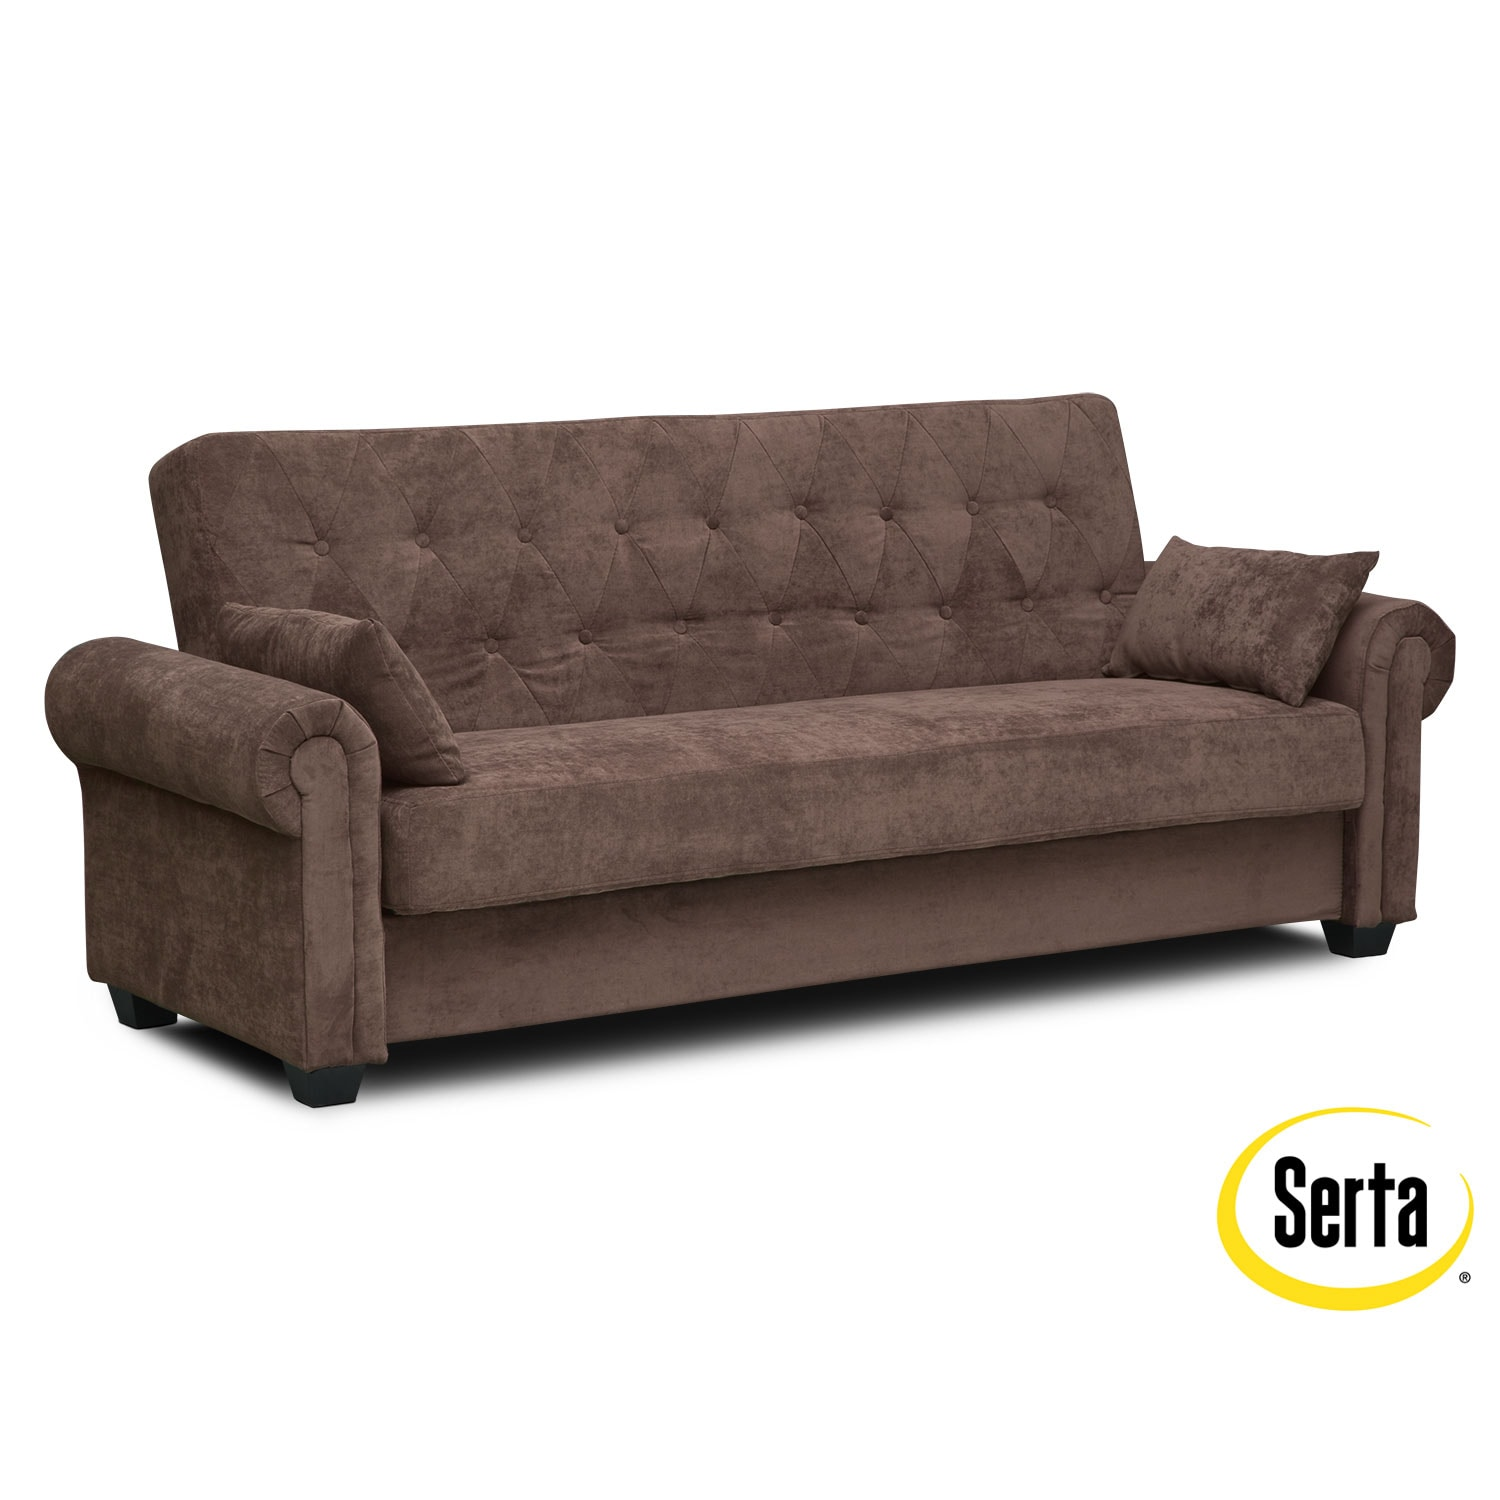 Living Room Furniture - Andrea Futon Sofa Bed with Storage - Java